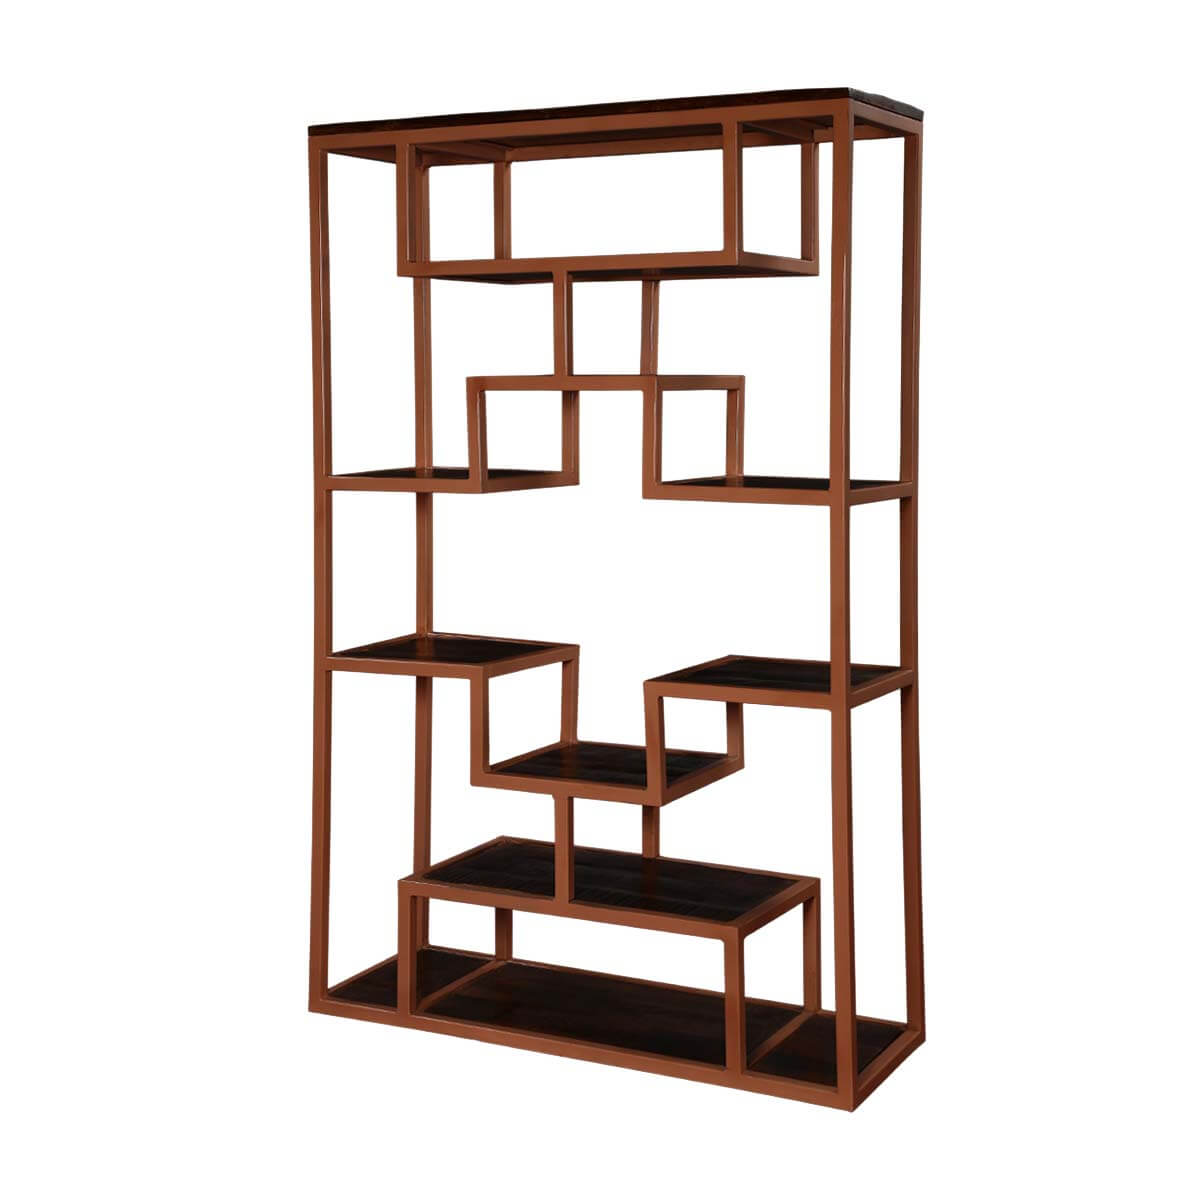 "Asian Reflection Mango Wood & Iron 63"" Open Display Wall Unit"